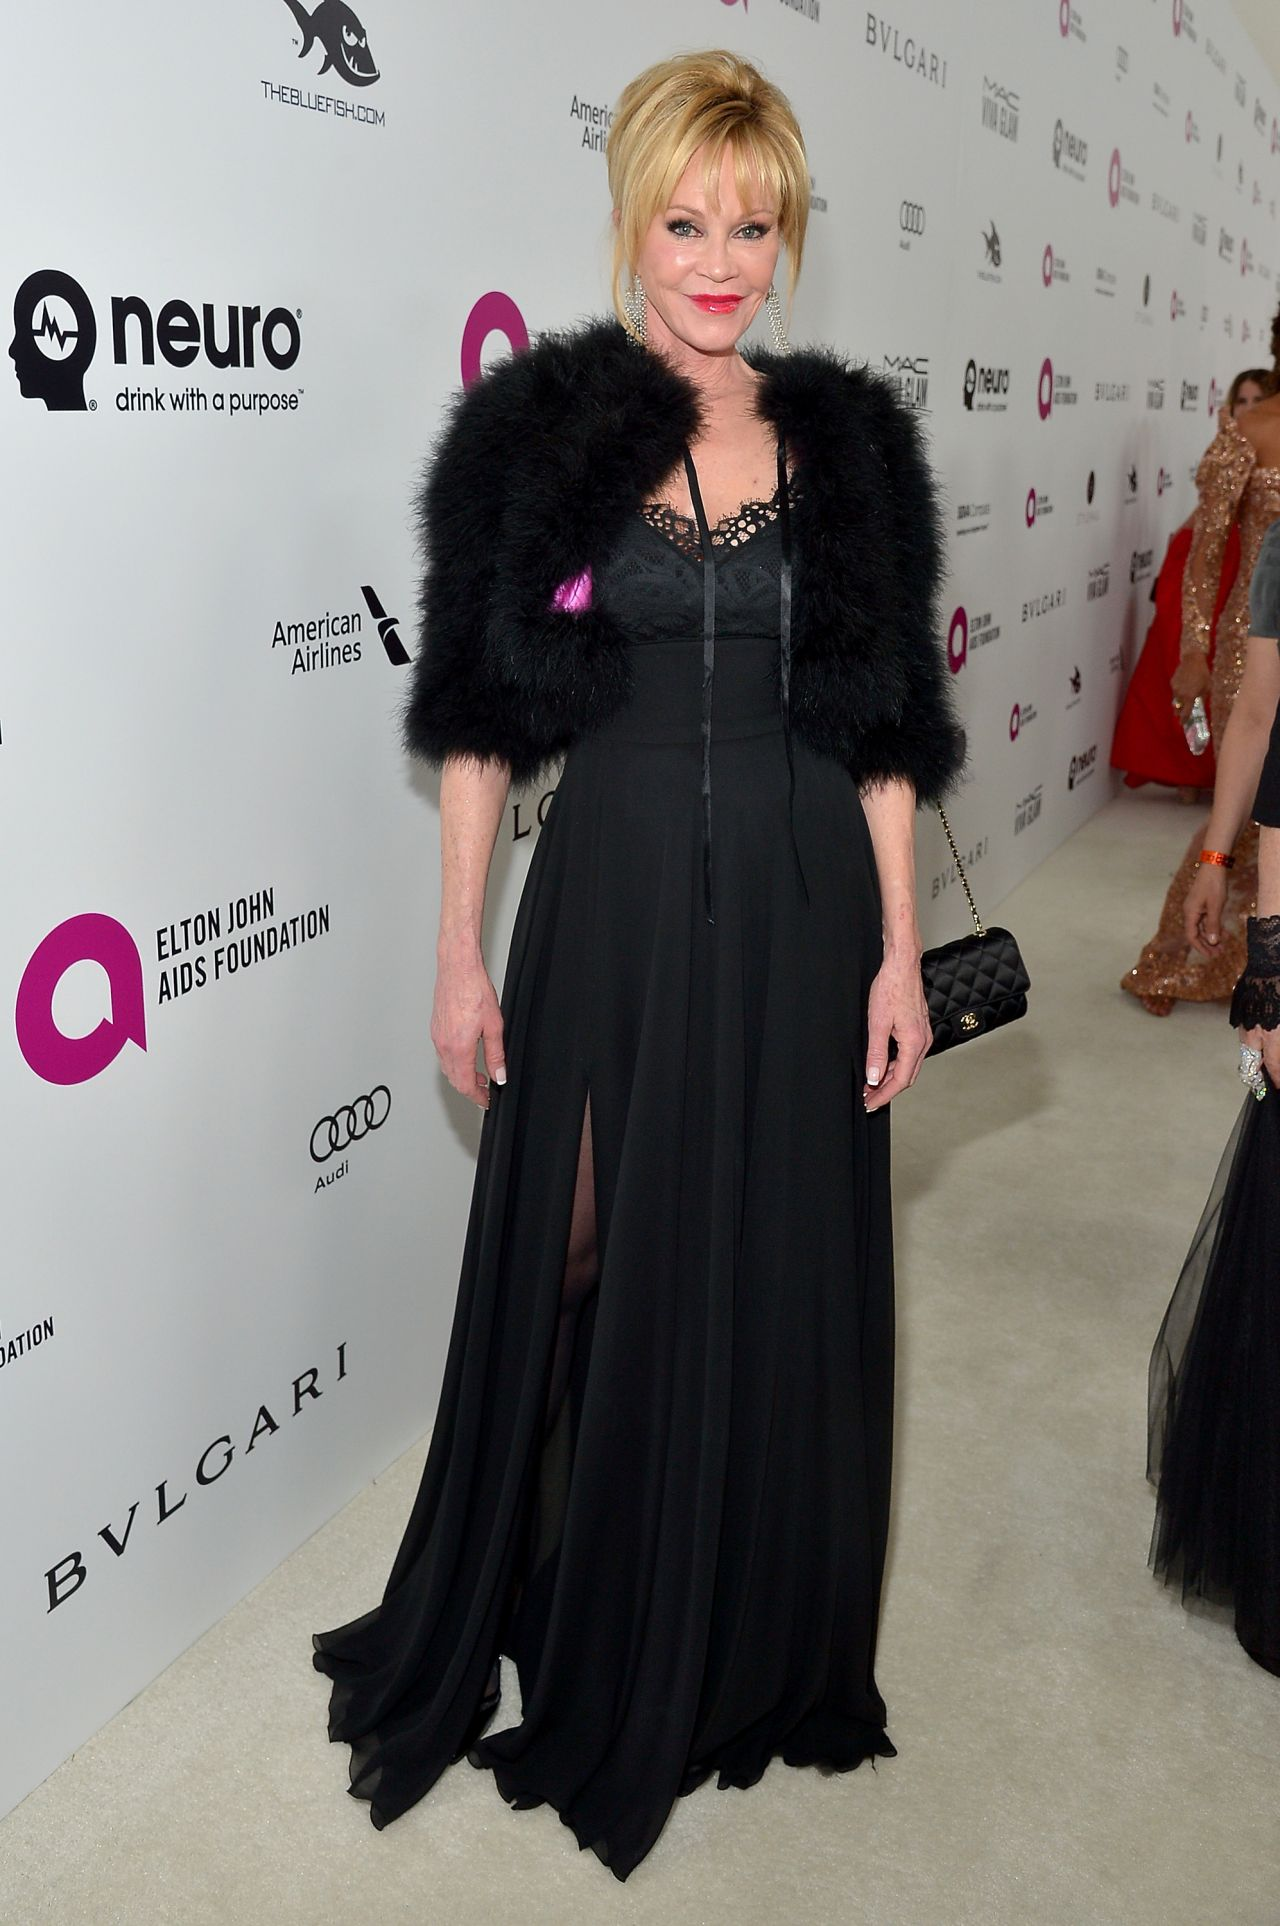 melanie-griffith-2016-elton-john-aids-foundation-s-oscar-viewing-party-in-west-hollywood-ca-3